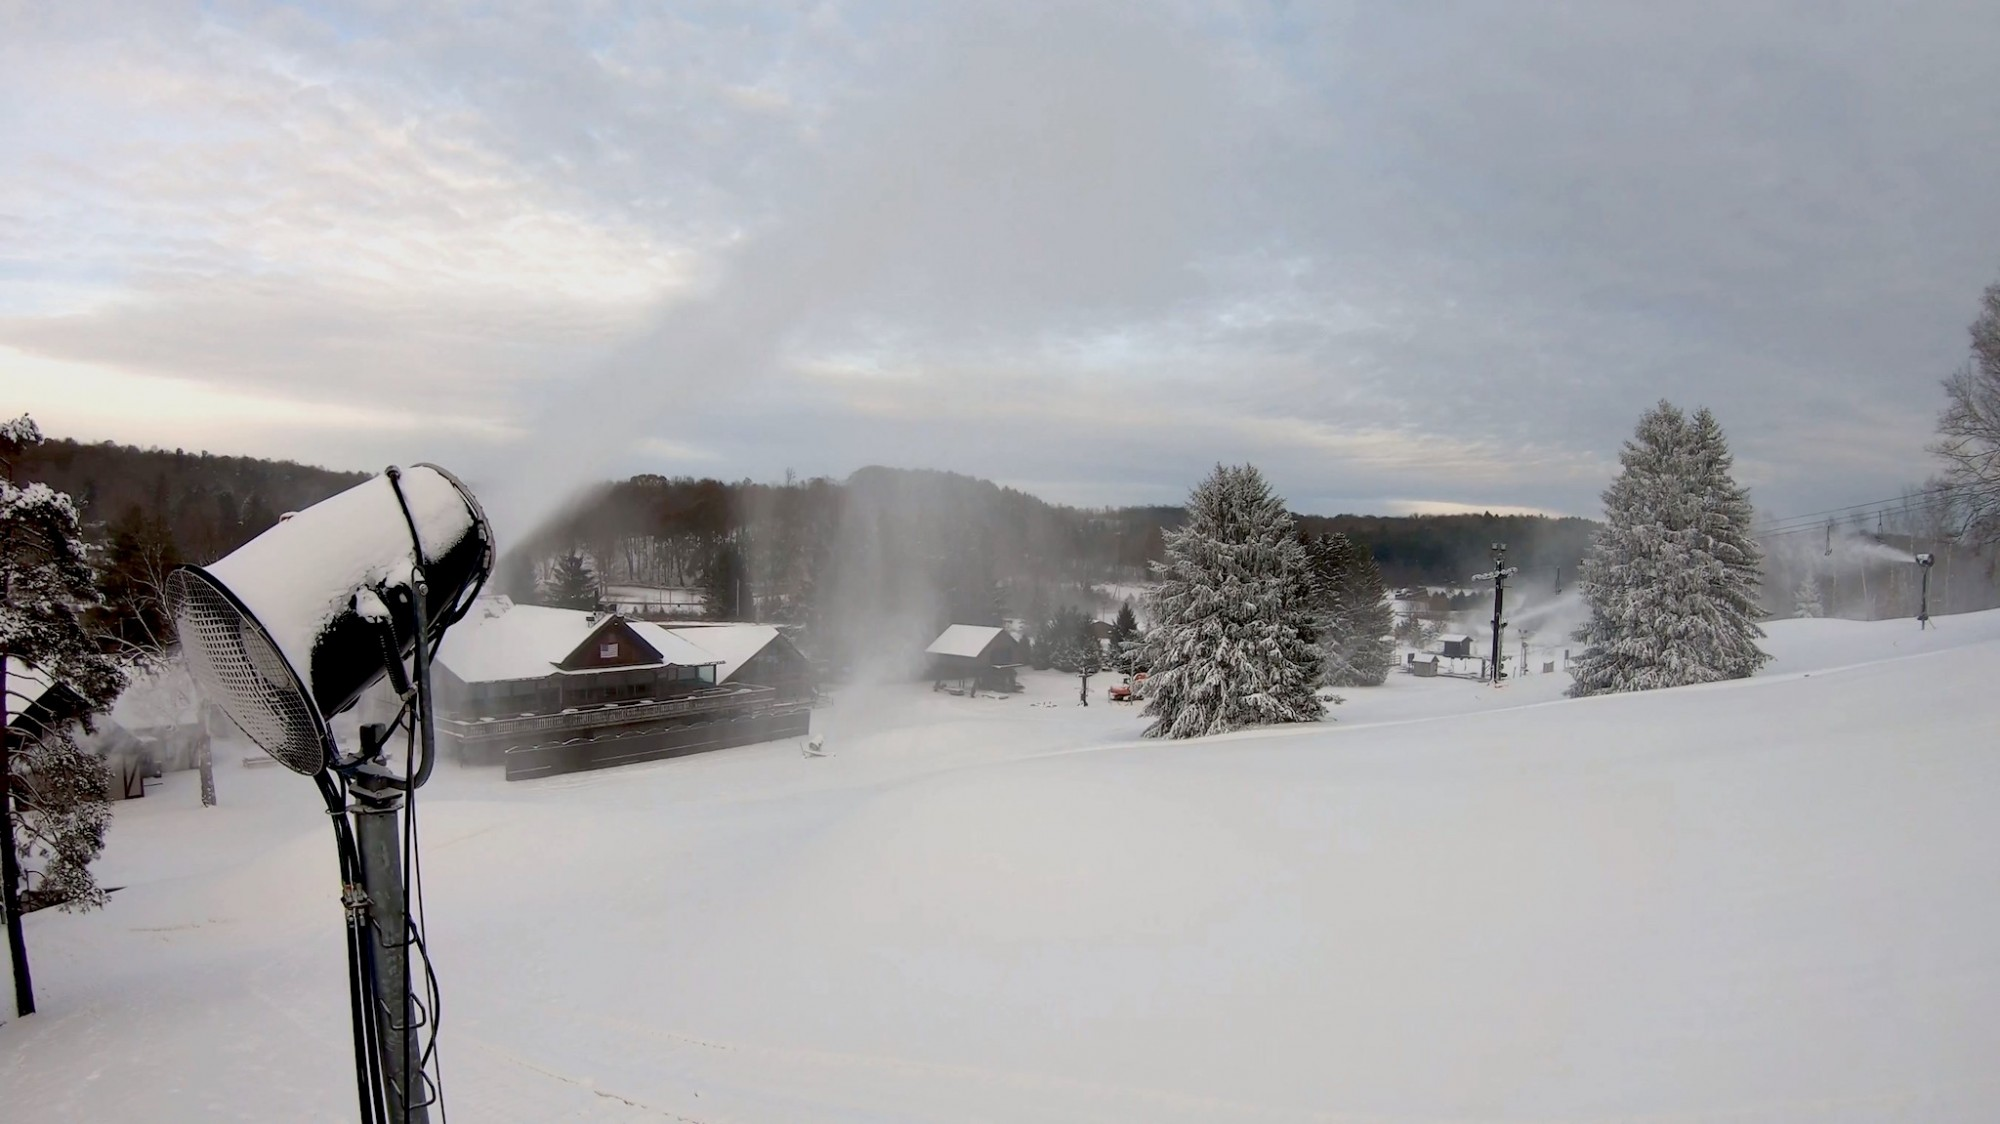 Snow Trails Earliest Ski Season Opening in Recorded History